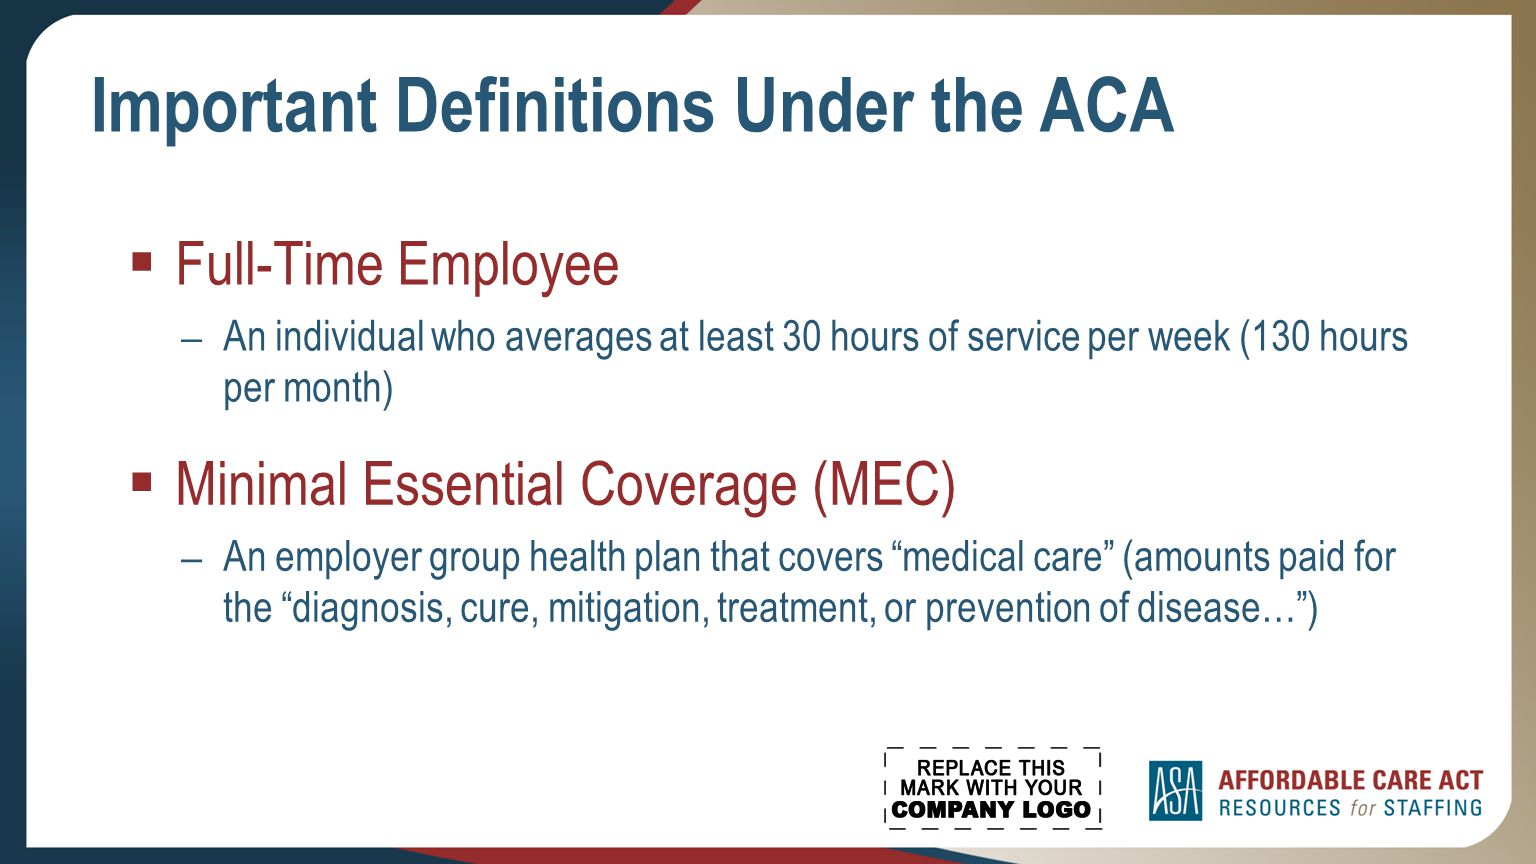 working with a staffing company under the affordable care act what